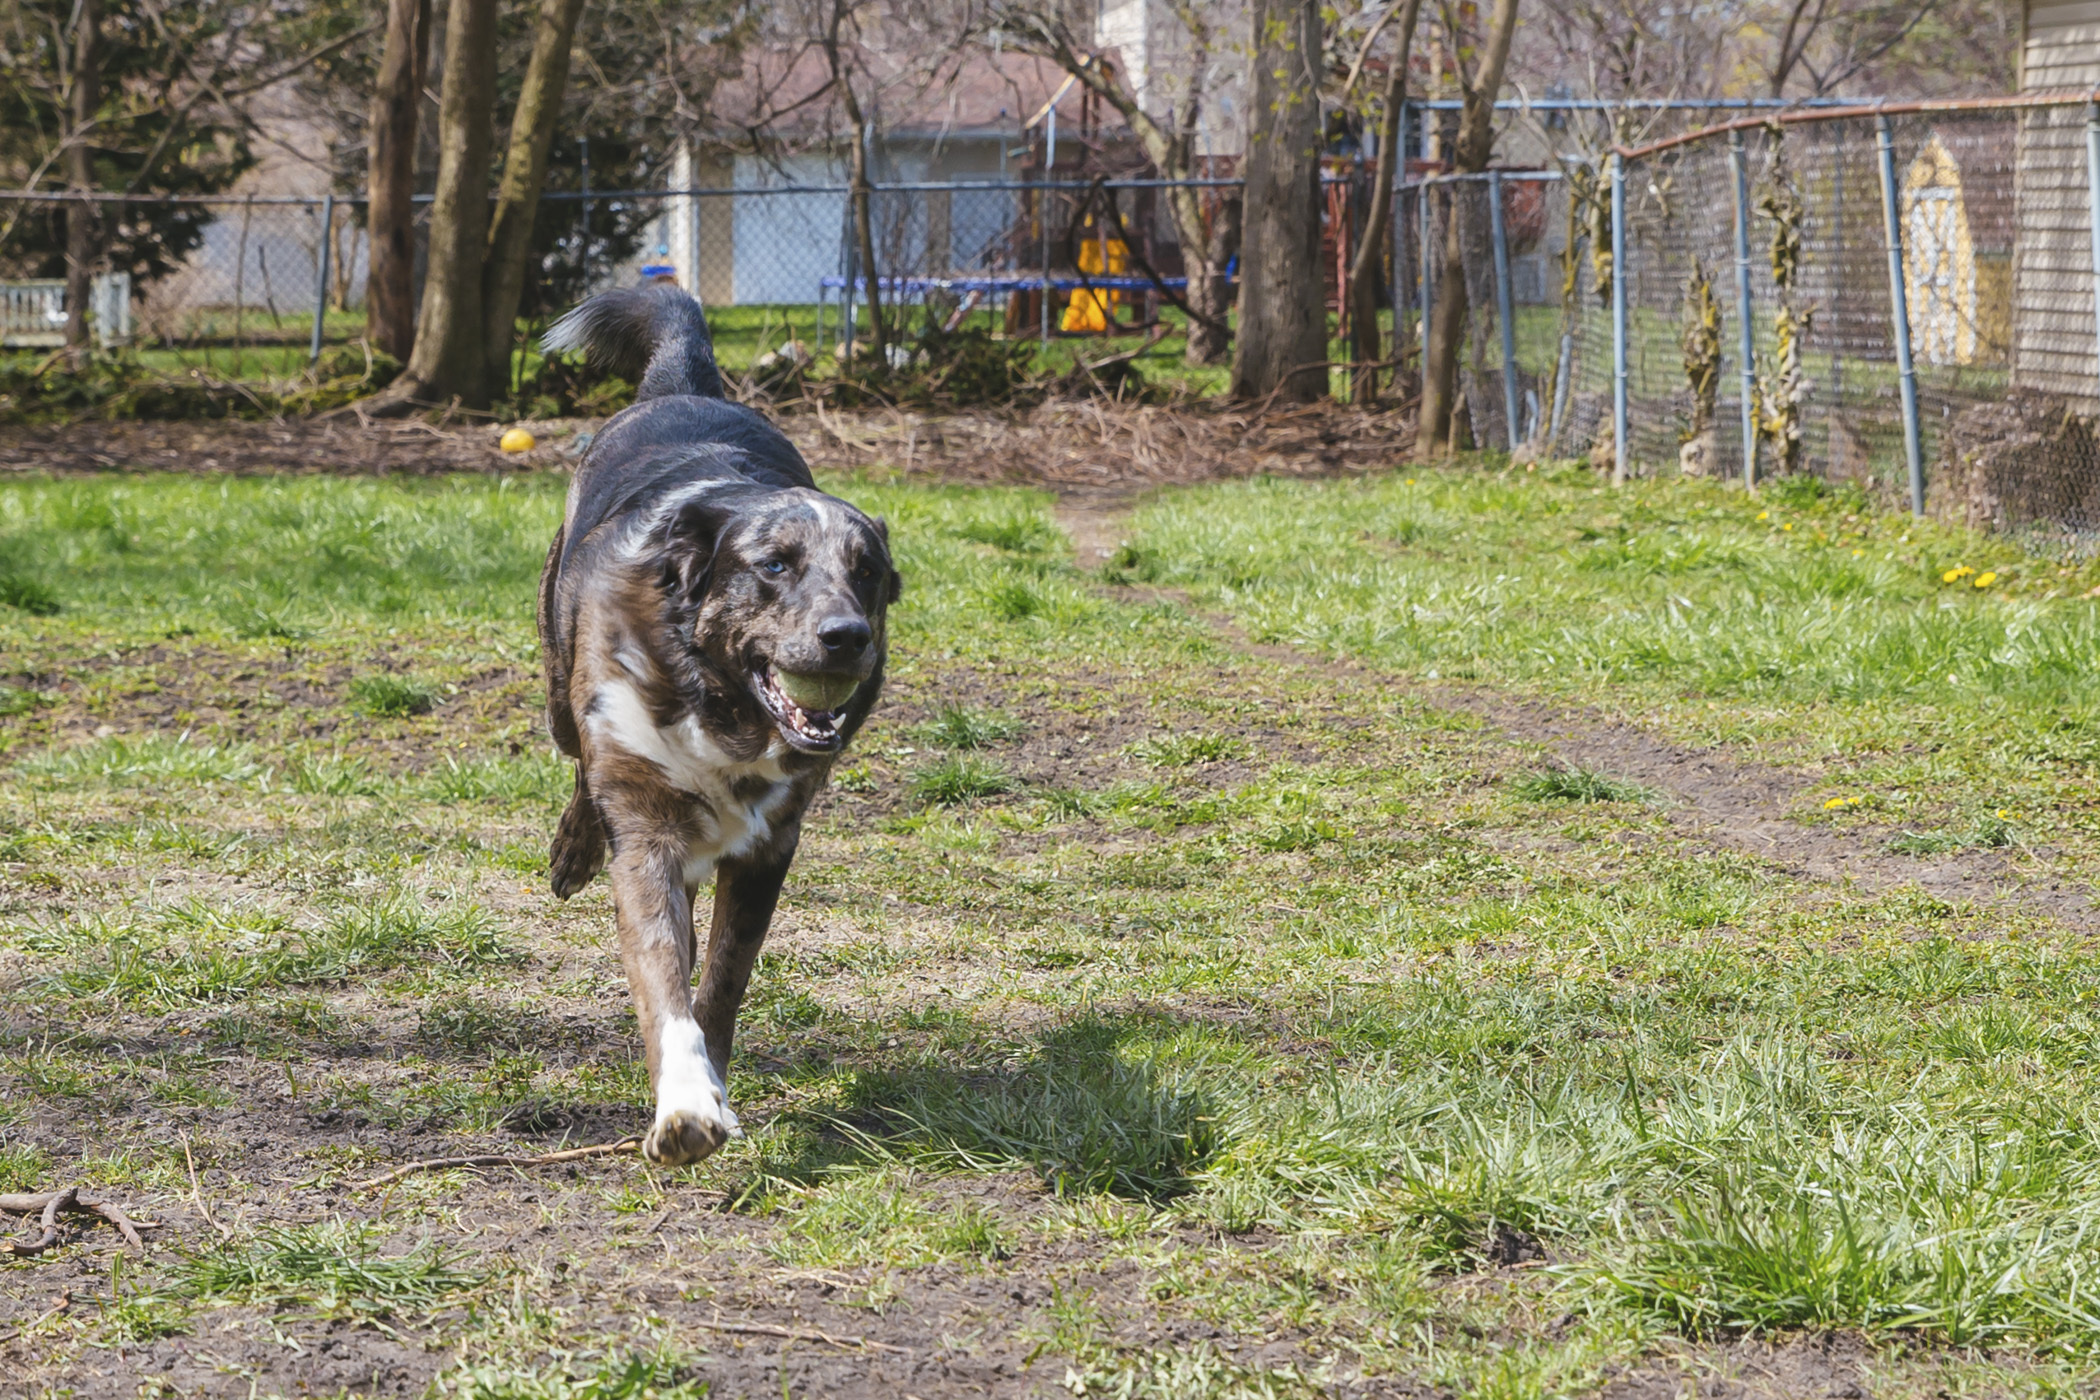 "Floyd is a 2-year-old{&nbsp;}Collie mix and rescue. He's got a pretty dopey personality but is a true gentle giant and loyal companion, according to his family. He loves booping everything and anyone with his nose, nature, snuggles and basically any activity outside. But he is not a fan of car rides or being in small spaces.{&nbsp;}<a  href=""http://seattlerefined.com/ruffined"" target=""_blank"" title=""http://seattlerefined.com/ruffined"">The RUFFined Spotlight{&nbsp;}</a>is a weekly profile of local pets living and loving life in the PNW. If you or someone you know has a pet you'd like featured, email us at{&nbsp;}<a  href=""mailto:hello@seattlerefined.com"" target=""_blank"" title=""mailto:hello@seattlerefined.com"">hello@seattlerefined.com{&nbsp;}</a>and your furbaby could be the next spotlighted! (Image: Sunita Martini / Seattle Refined)"